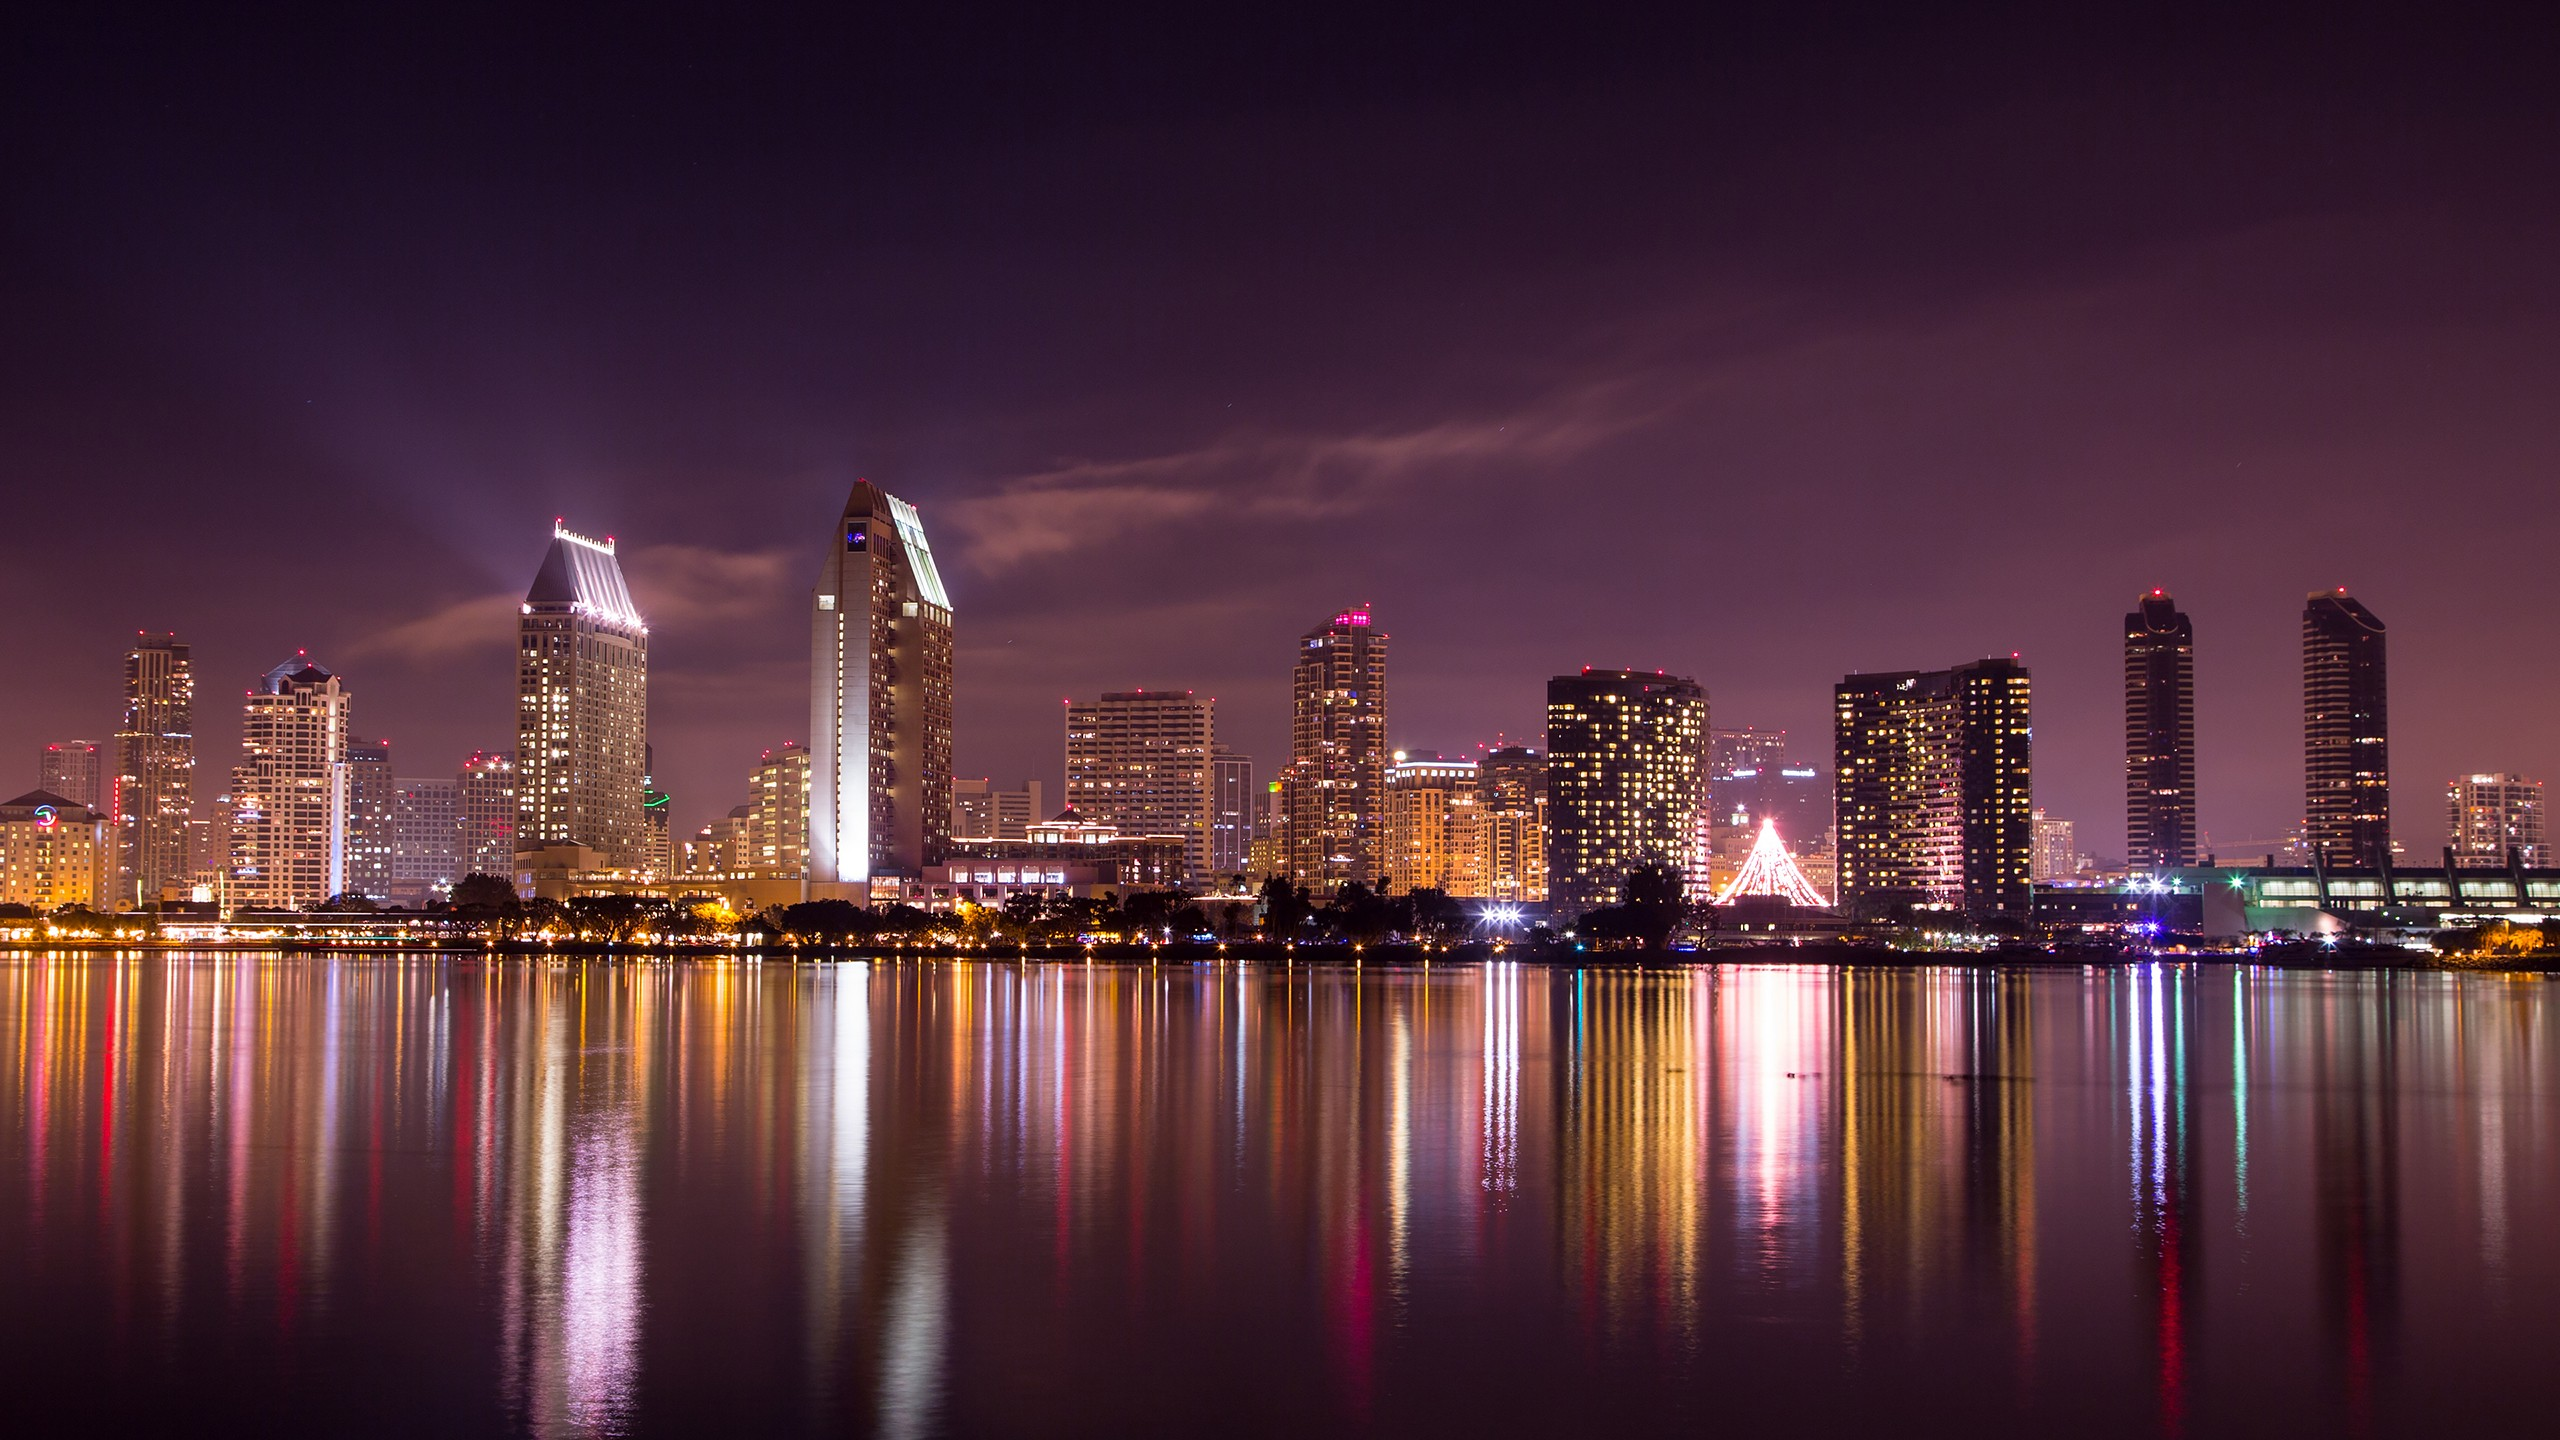 Us Flag Iphone Wallpaper San Diego Skyline Wallpapers Hd Wallpapers Id 13170